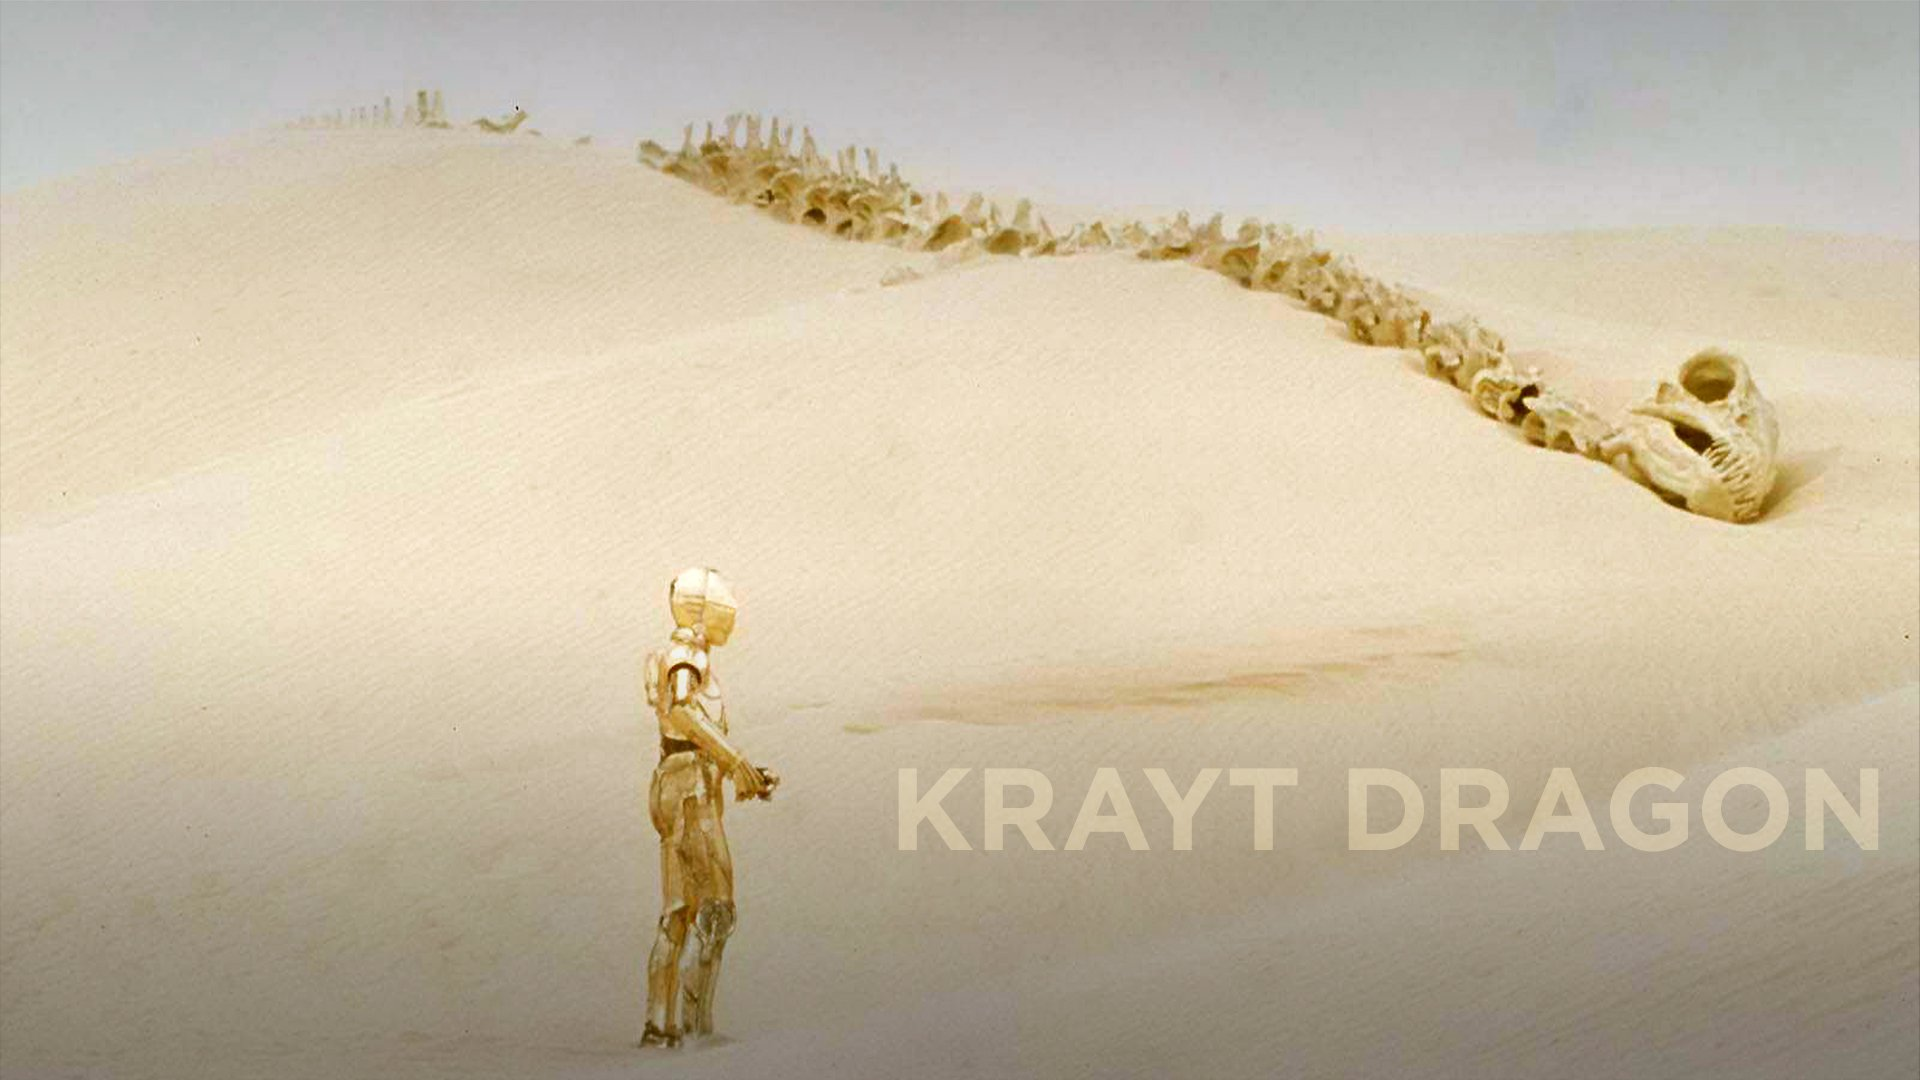 Krayt Dragon - Star Wars IV